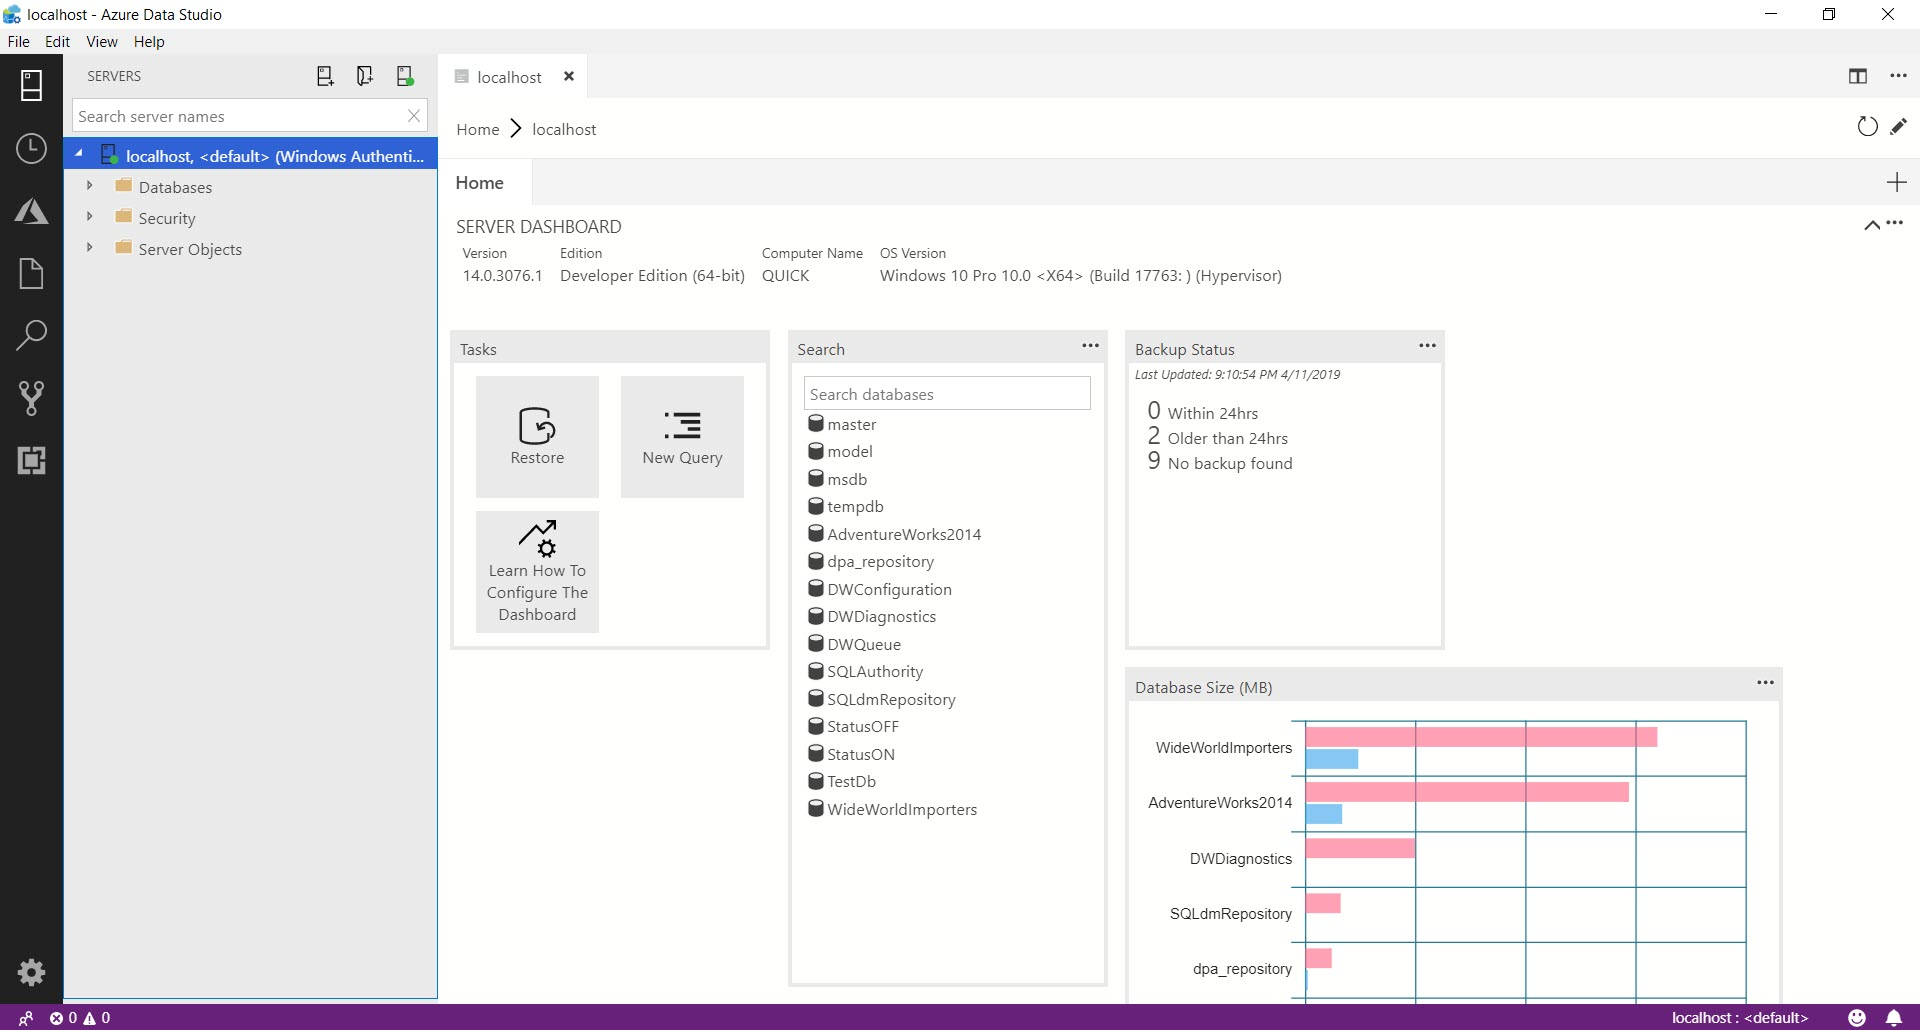 SQL SERVER - Getting Started with Azure Data Studio azuredatastudio10